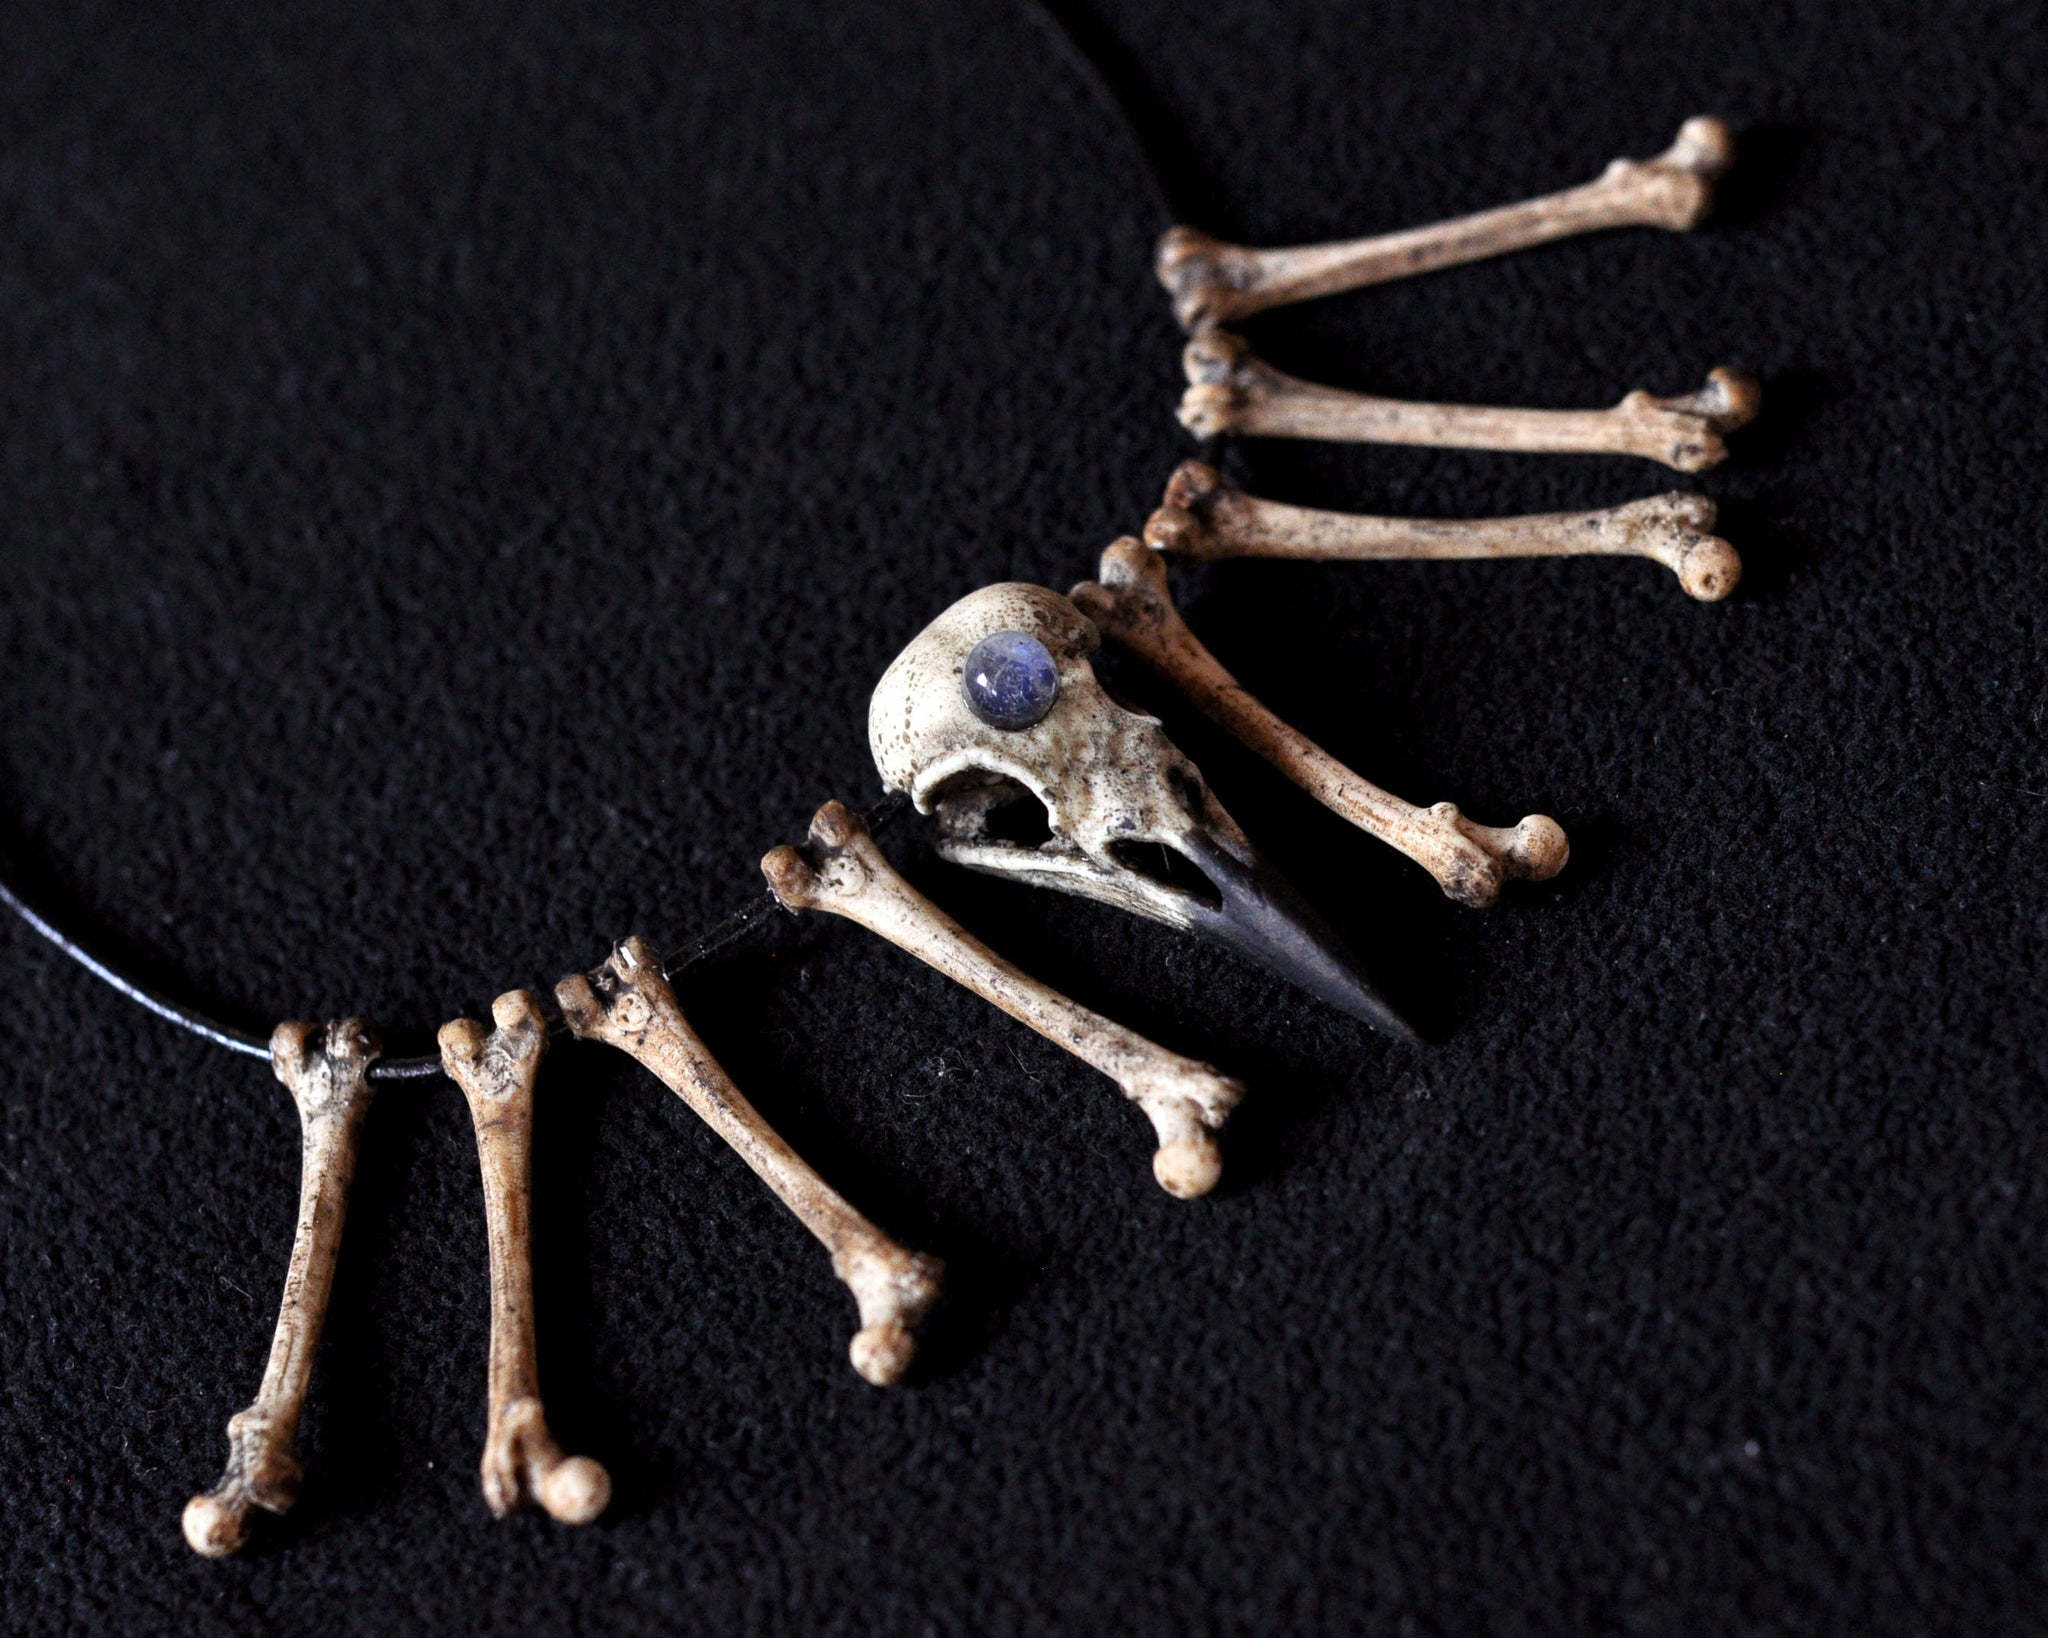 Crow Skull Choker Necklace, Realistic Bones Necklace, Rainbow Moonstone Necklace, Resin Pendant, Gothic Style Necklace, Replica skull